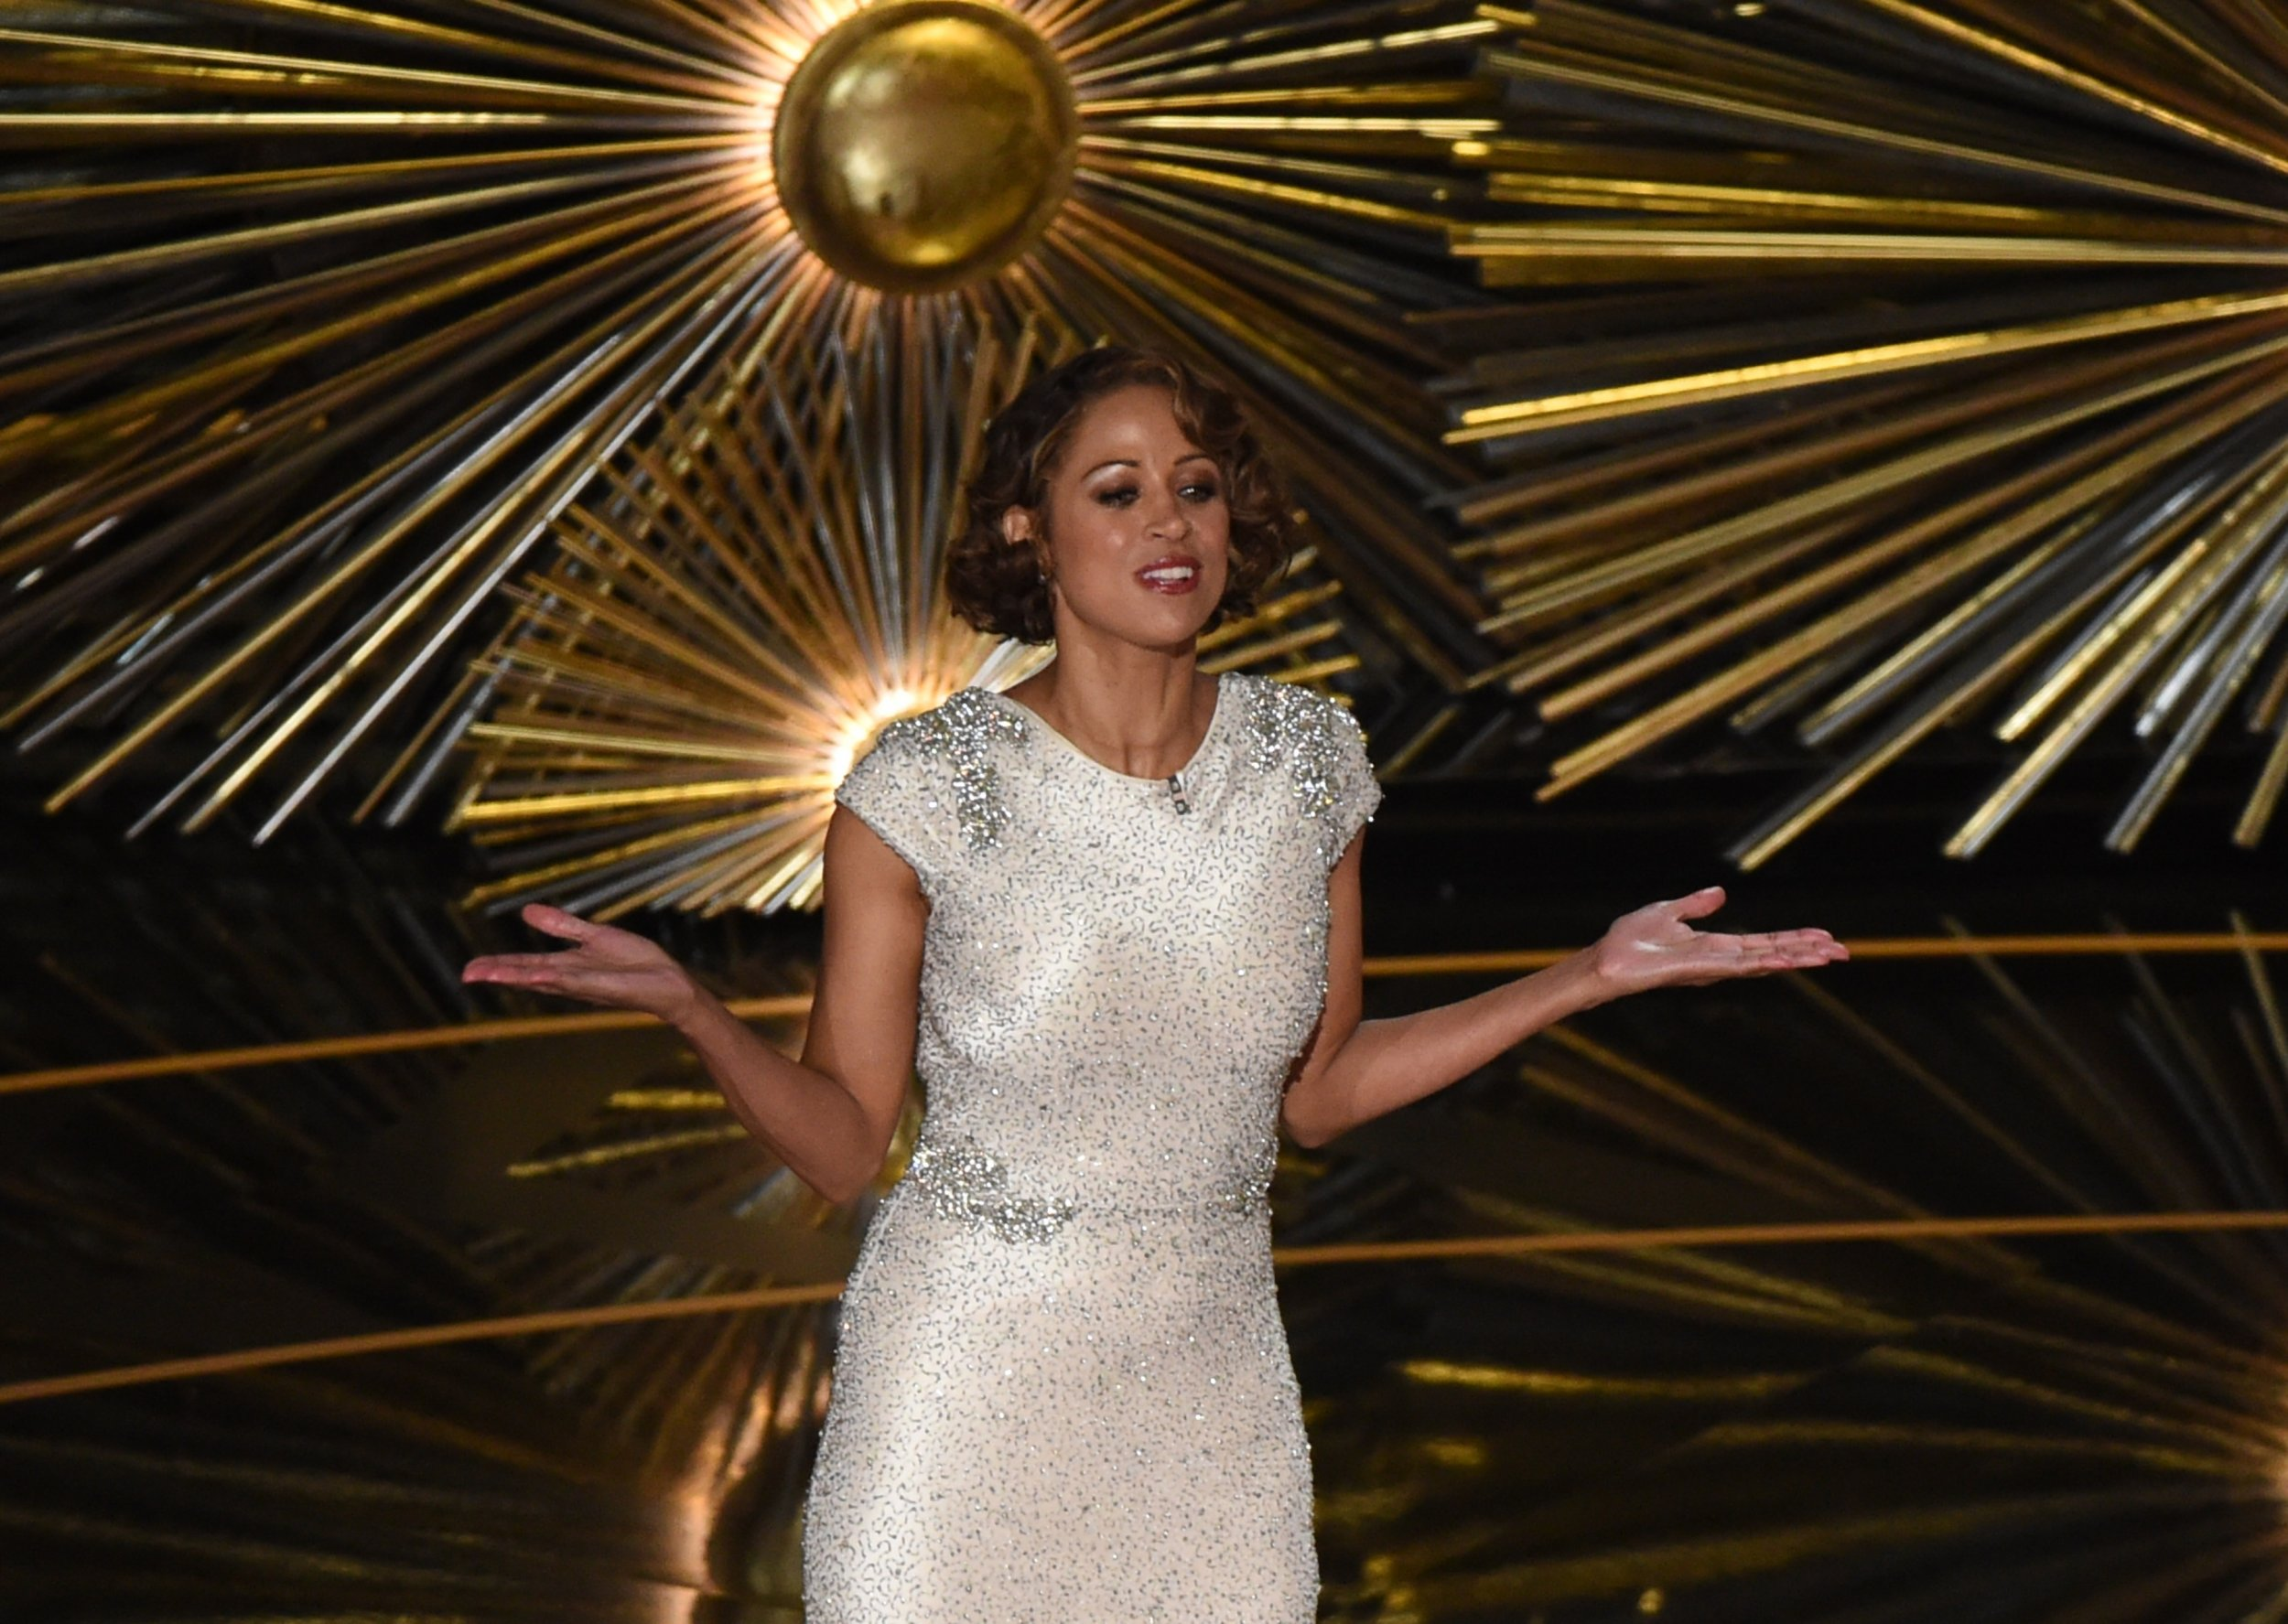 Stacey Dash's most controversial comments